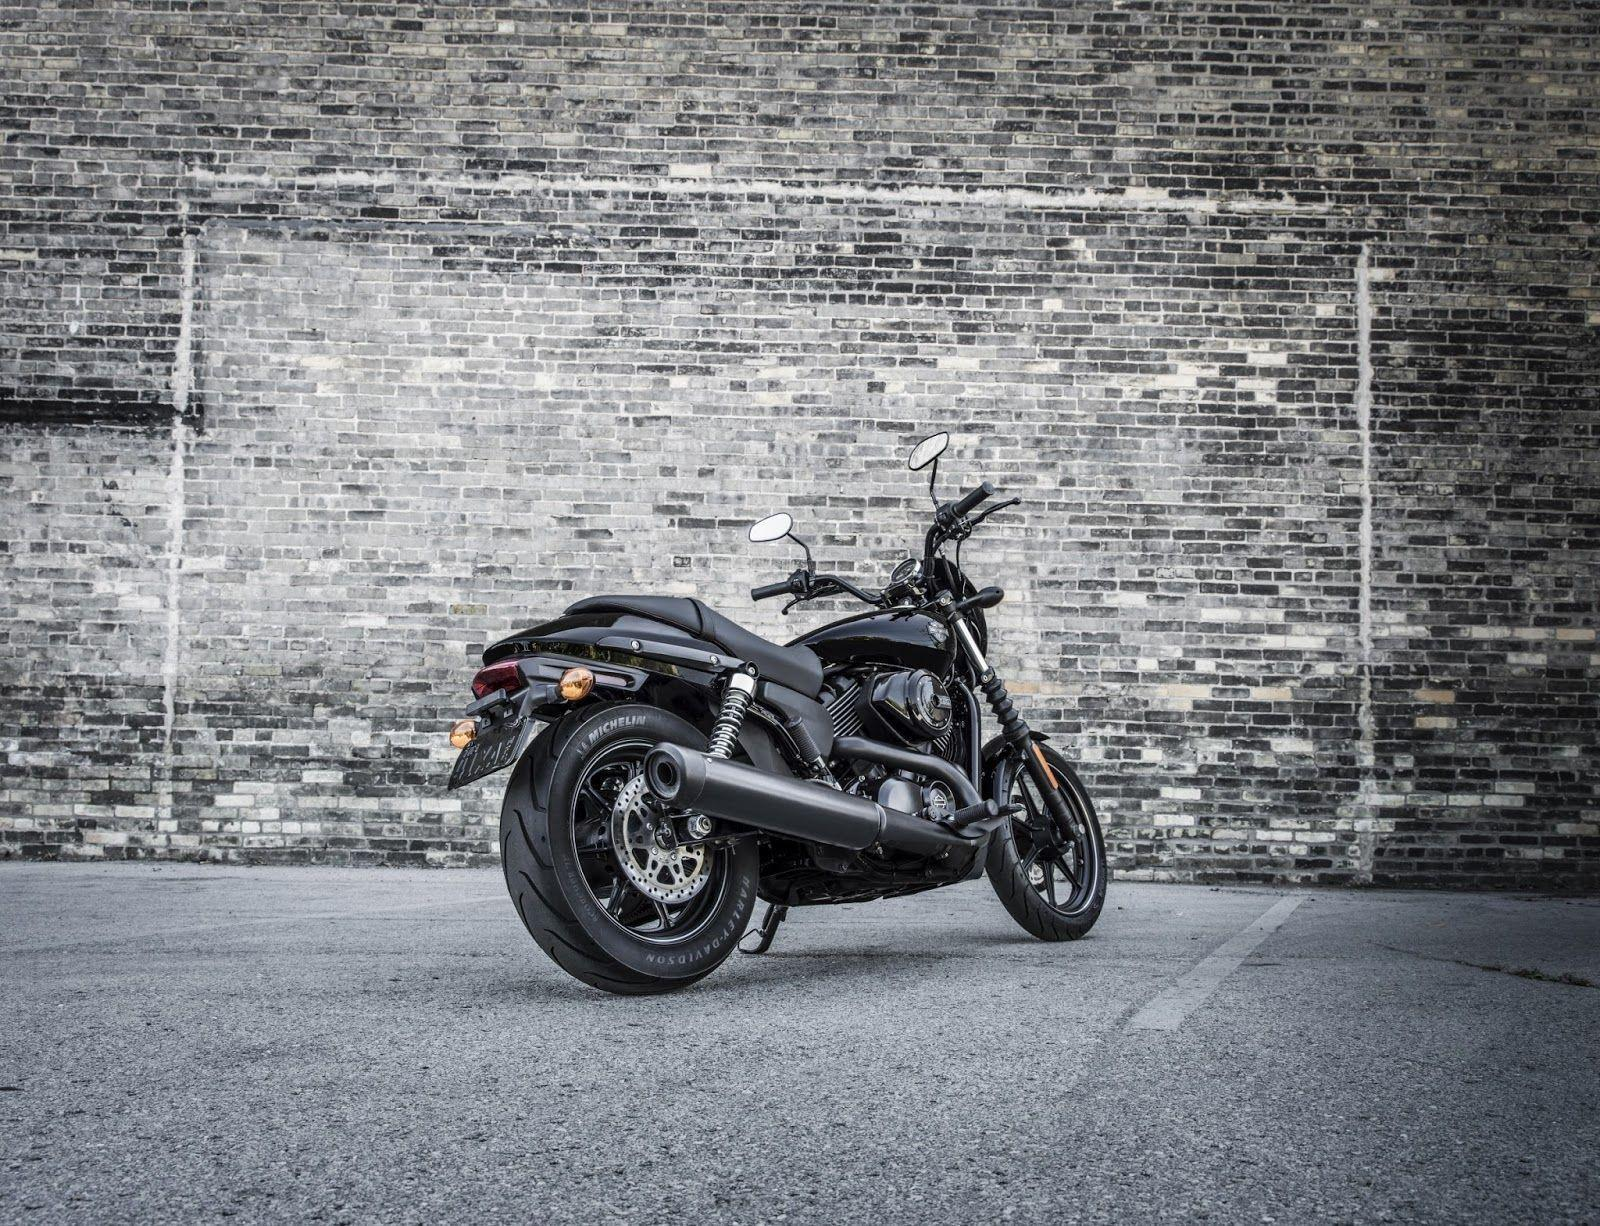 Harley sport 750 | Free Desk Wallpapers